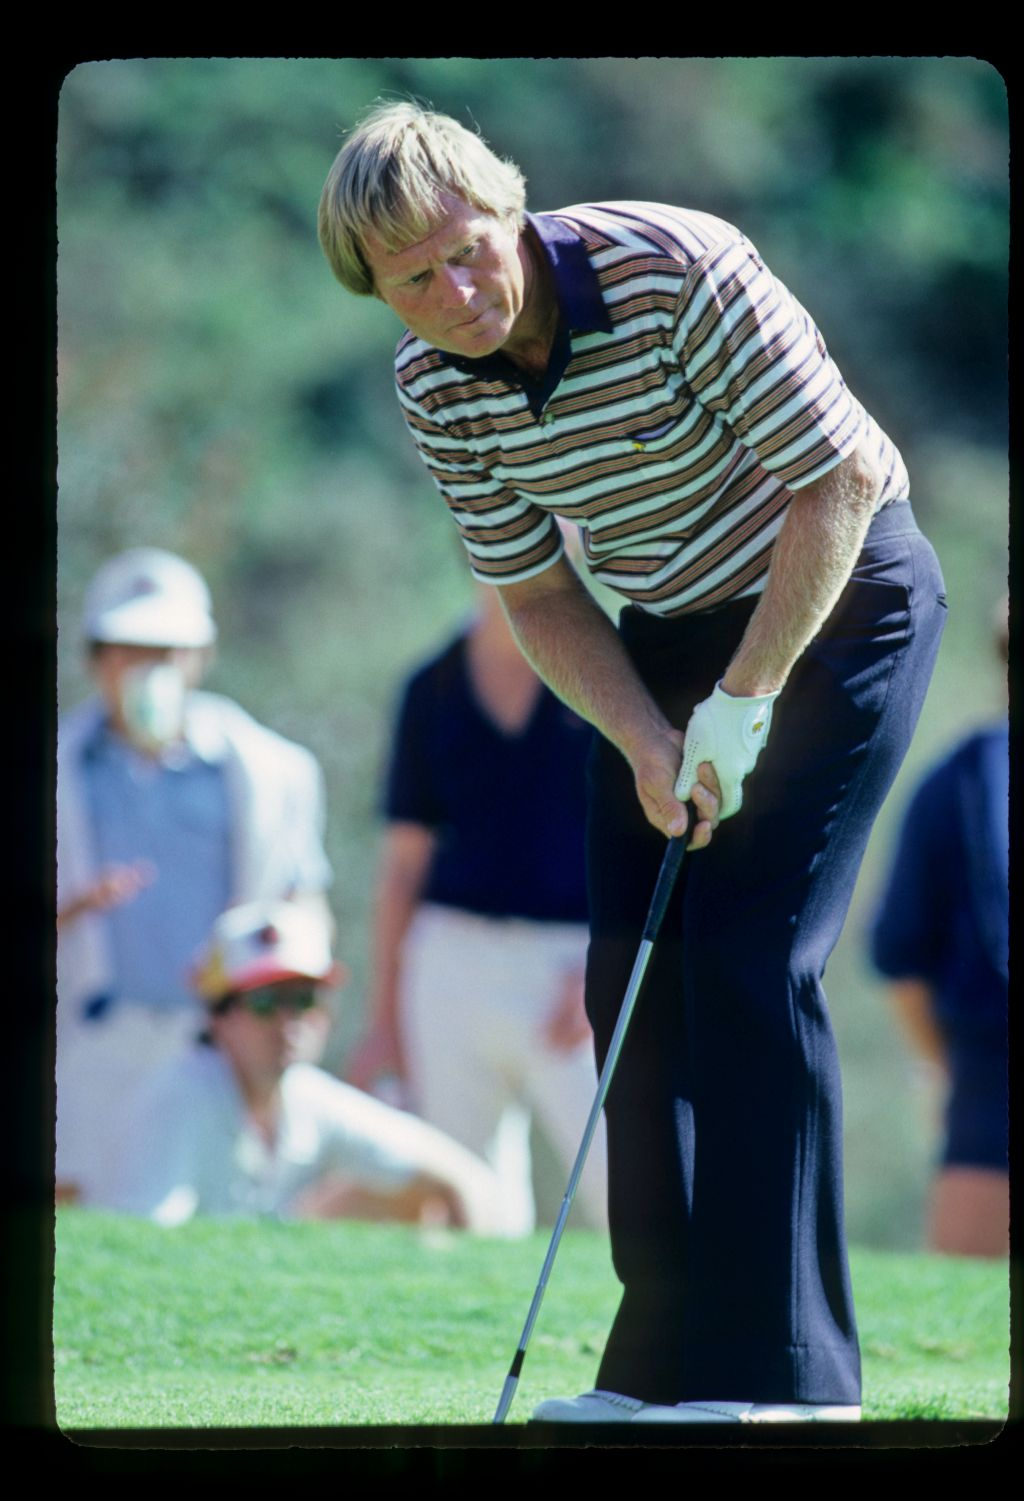 Jack Nicklaus looking intently at the progress of his ball after putting during the 1981 LA Open